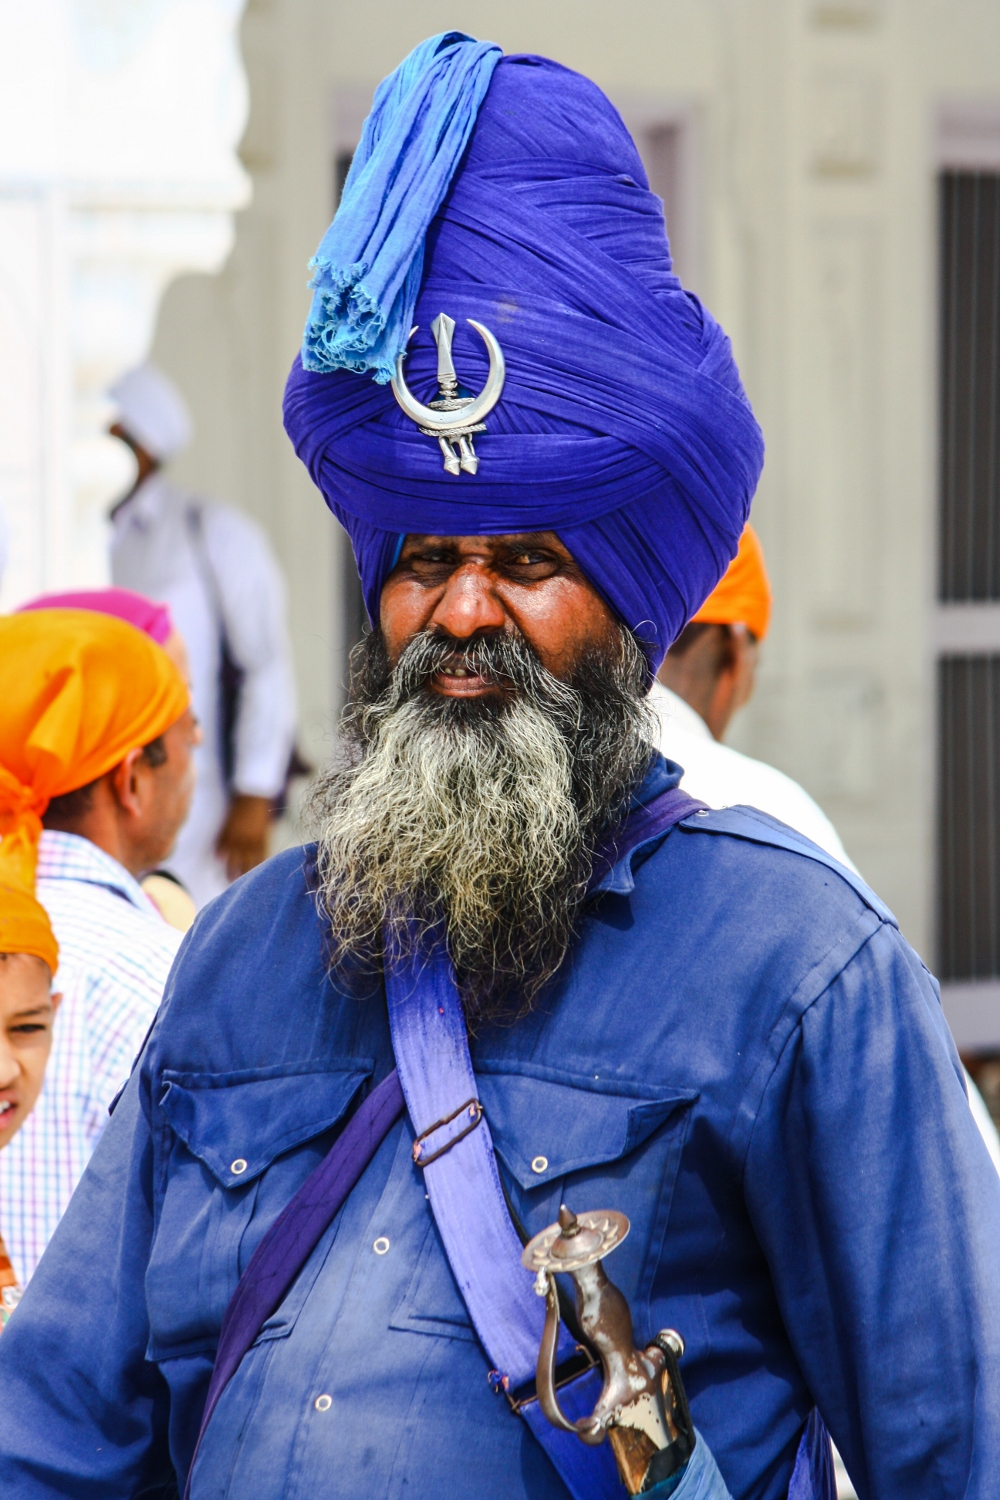 Mustaches, Beards, Turbans and Golden Magic – Sayonara Pushek